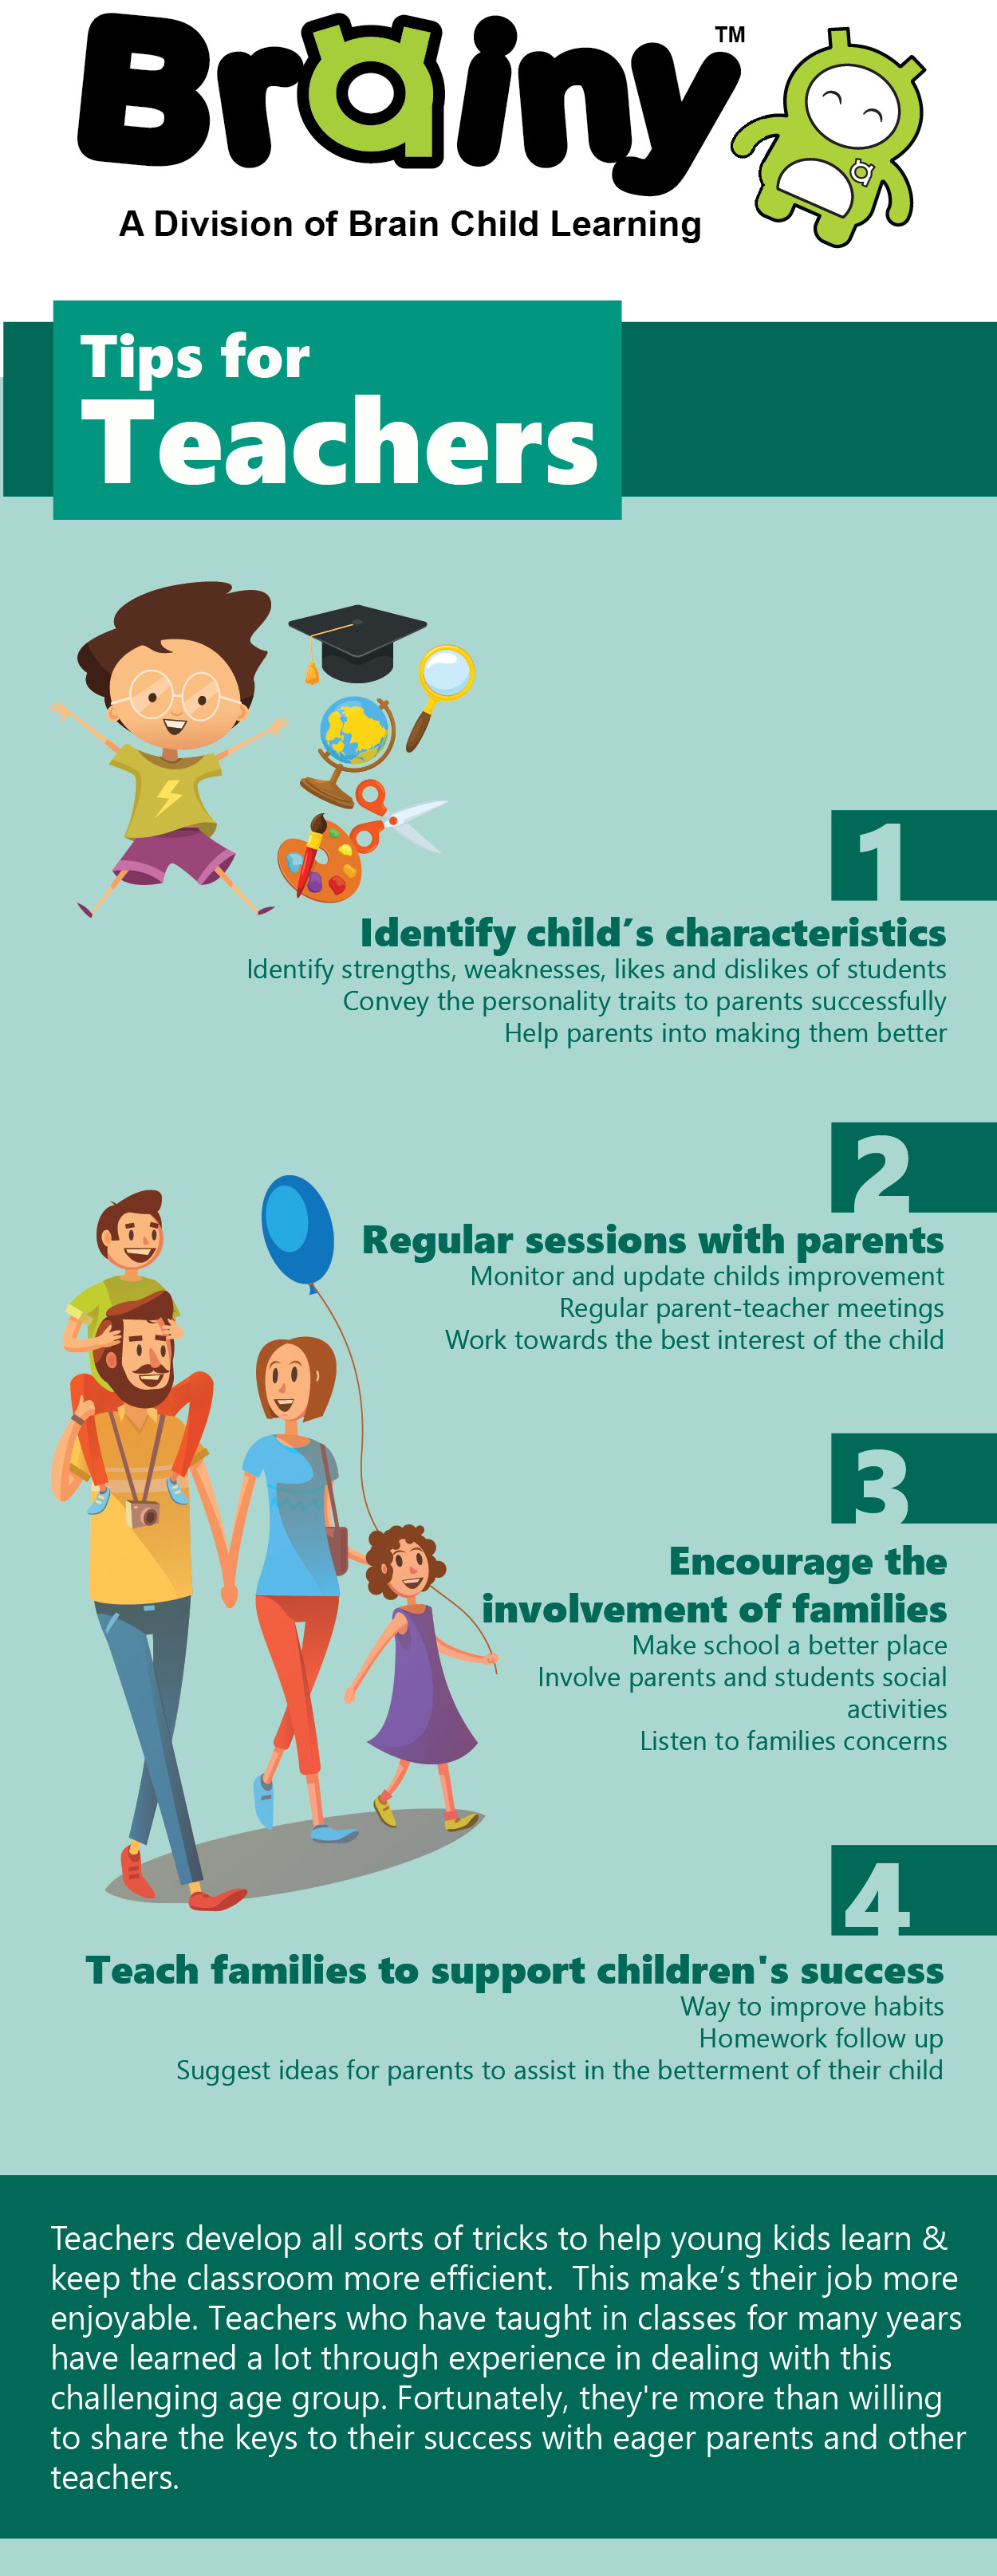 Brainy Infographic on tips for teachers to better students